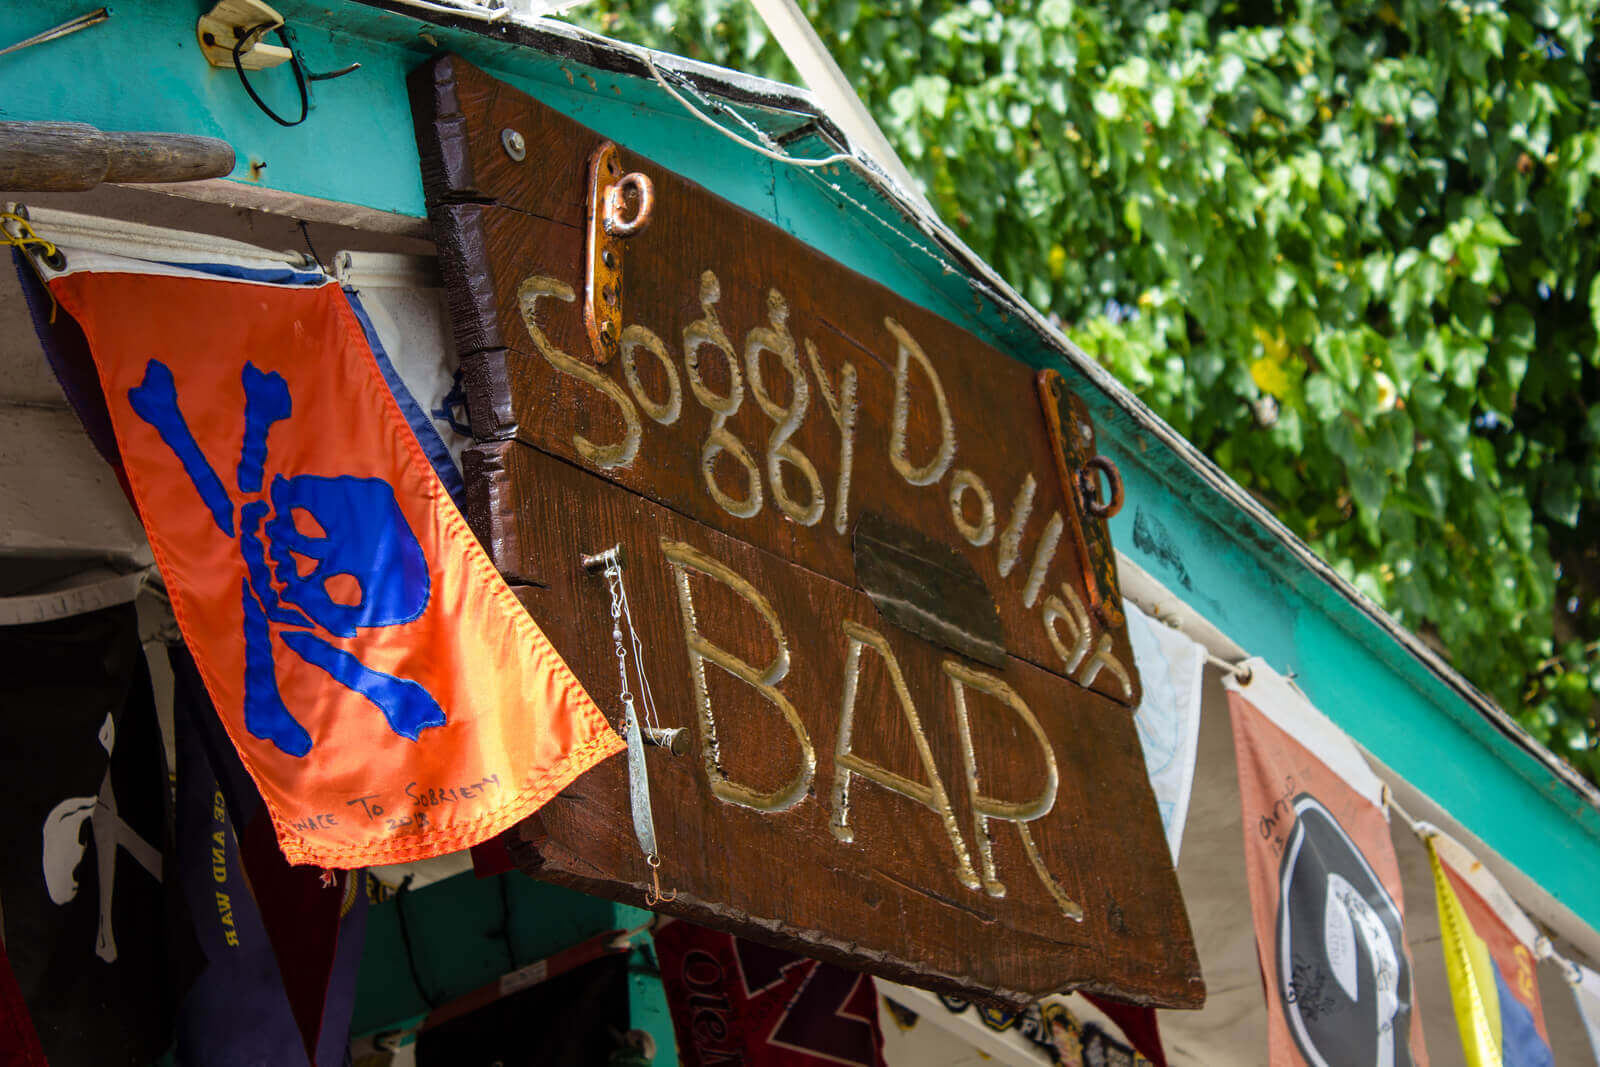 Soggy Dollar bar Sign